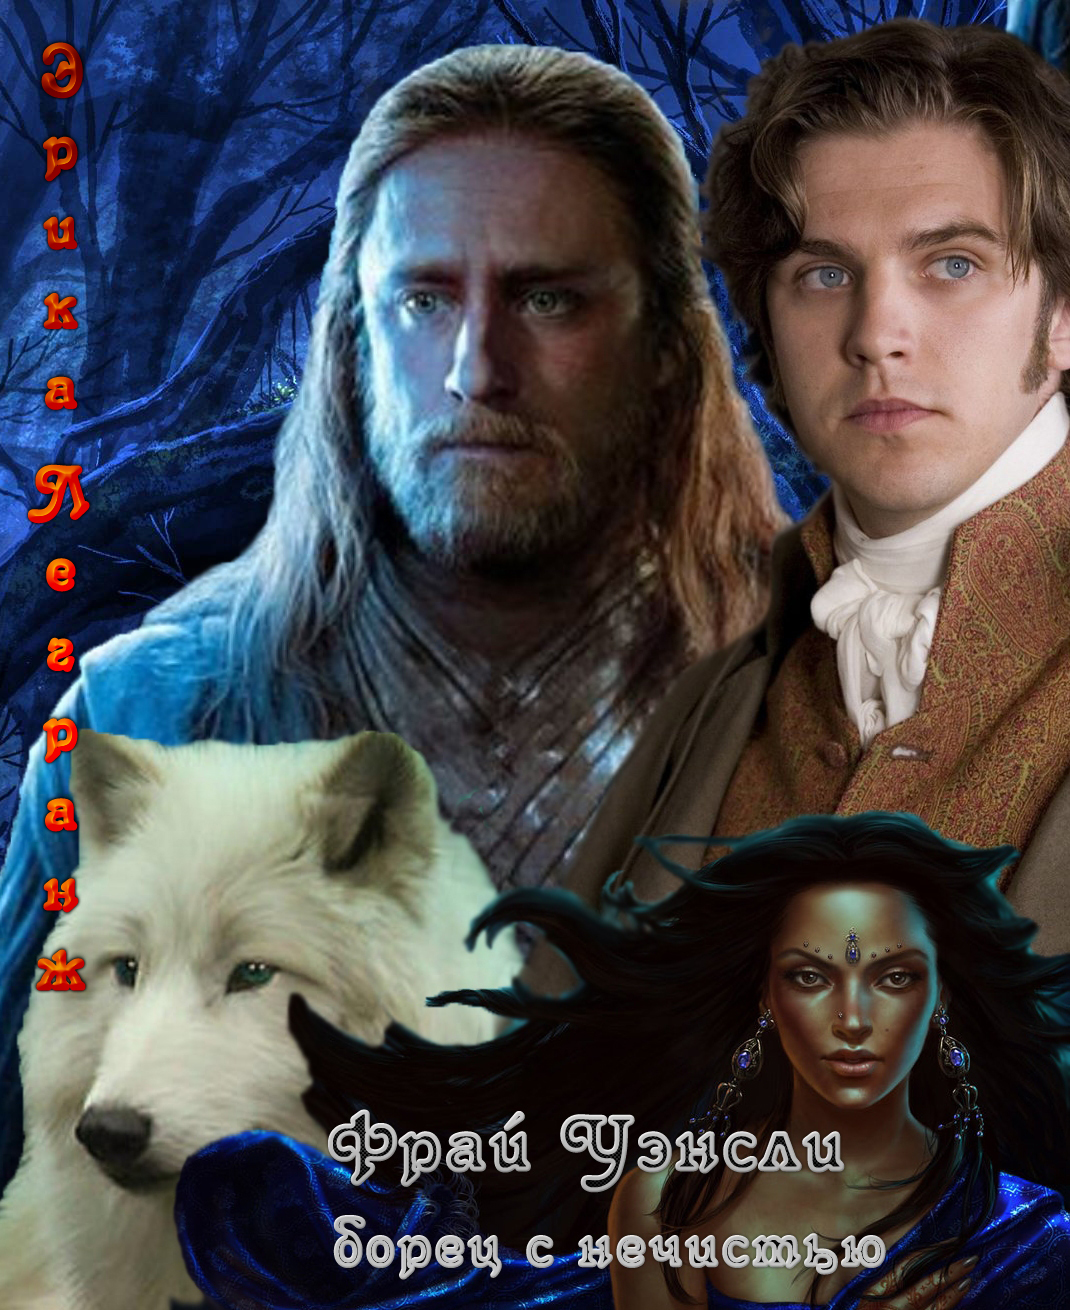 Wilhelm Wundt Lectures on Human and Animal Psychology